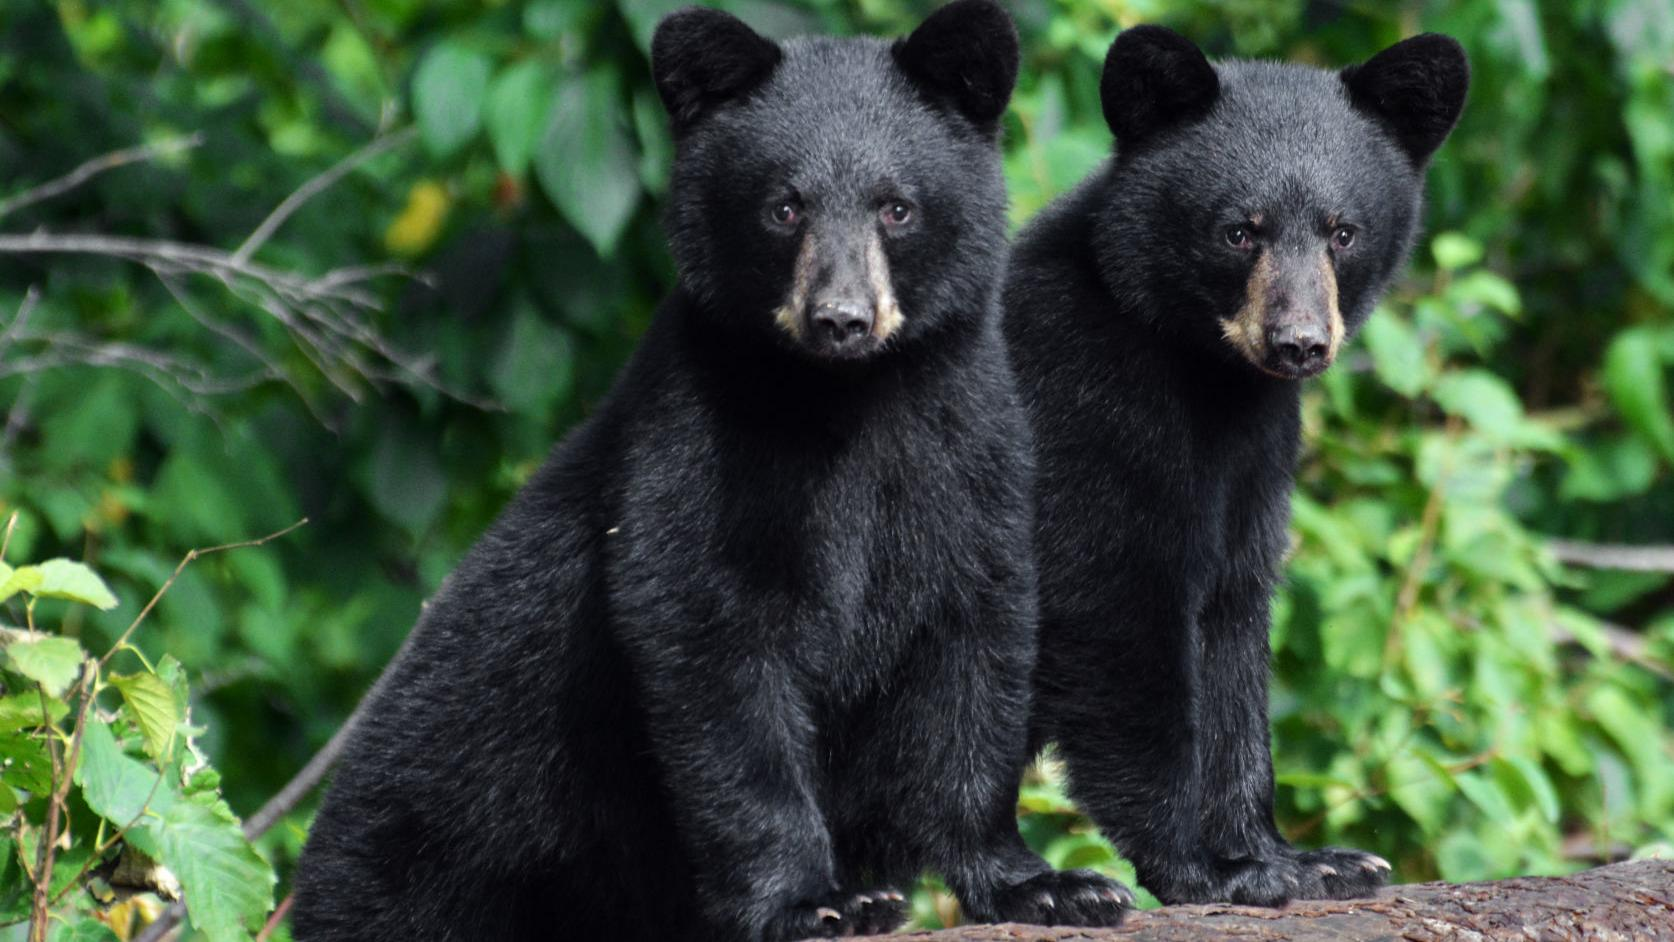 Patricia Randolph's Madravenspeak: Taking a stand for bear personhood